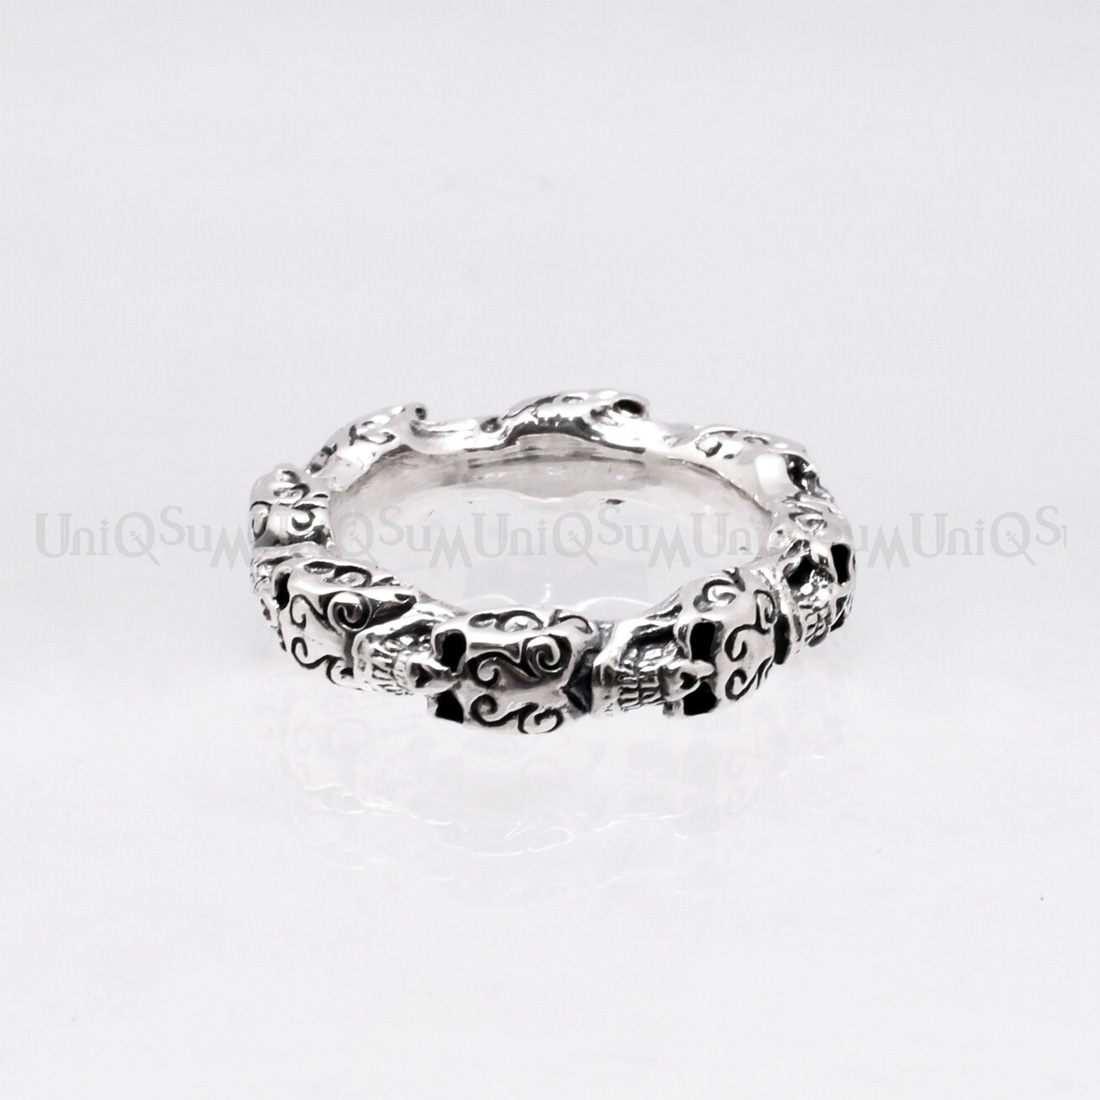 strong style sterling band antique pmr ring jewelry rings purity bling stay silver